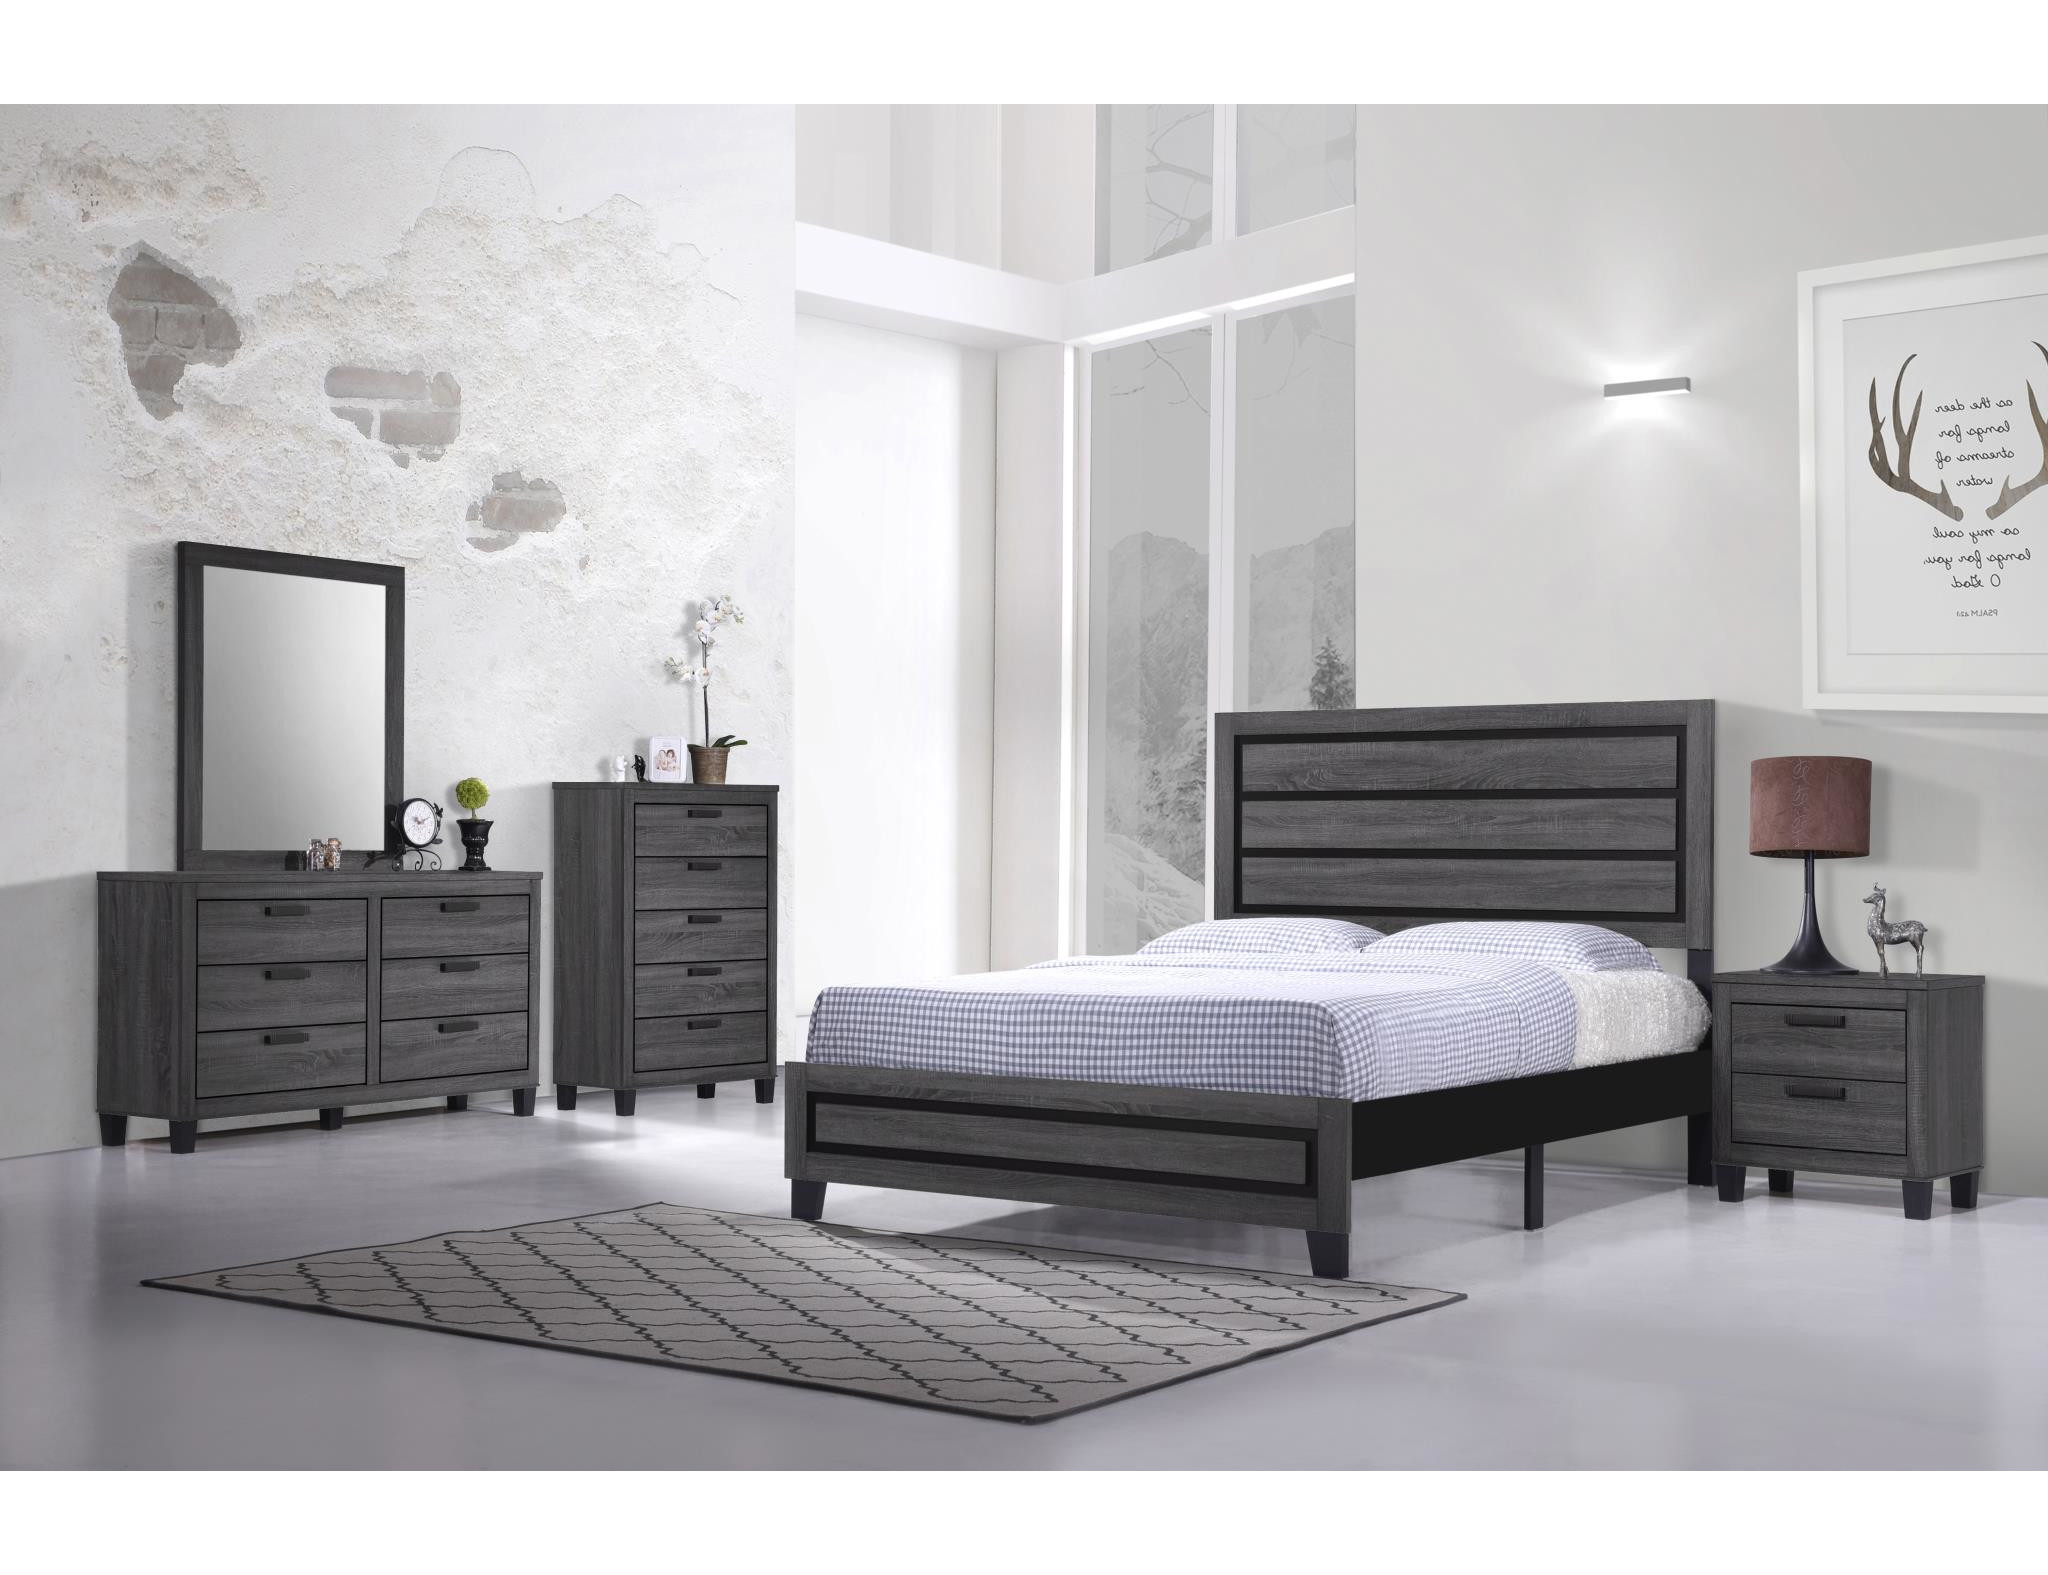 22802 – Bedroom Set